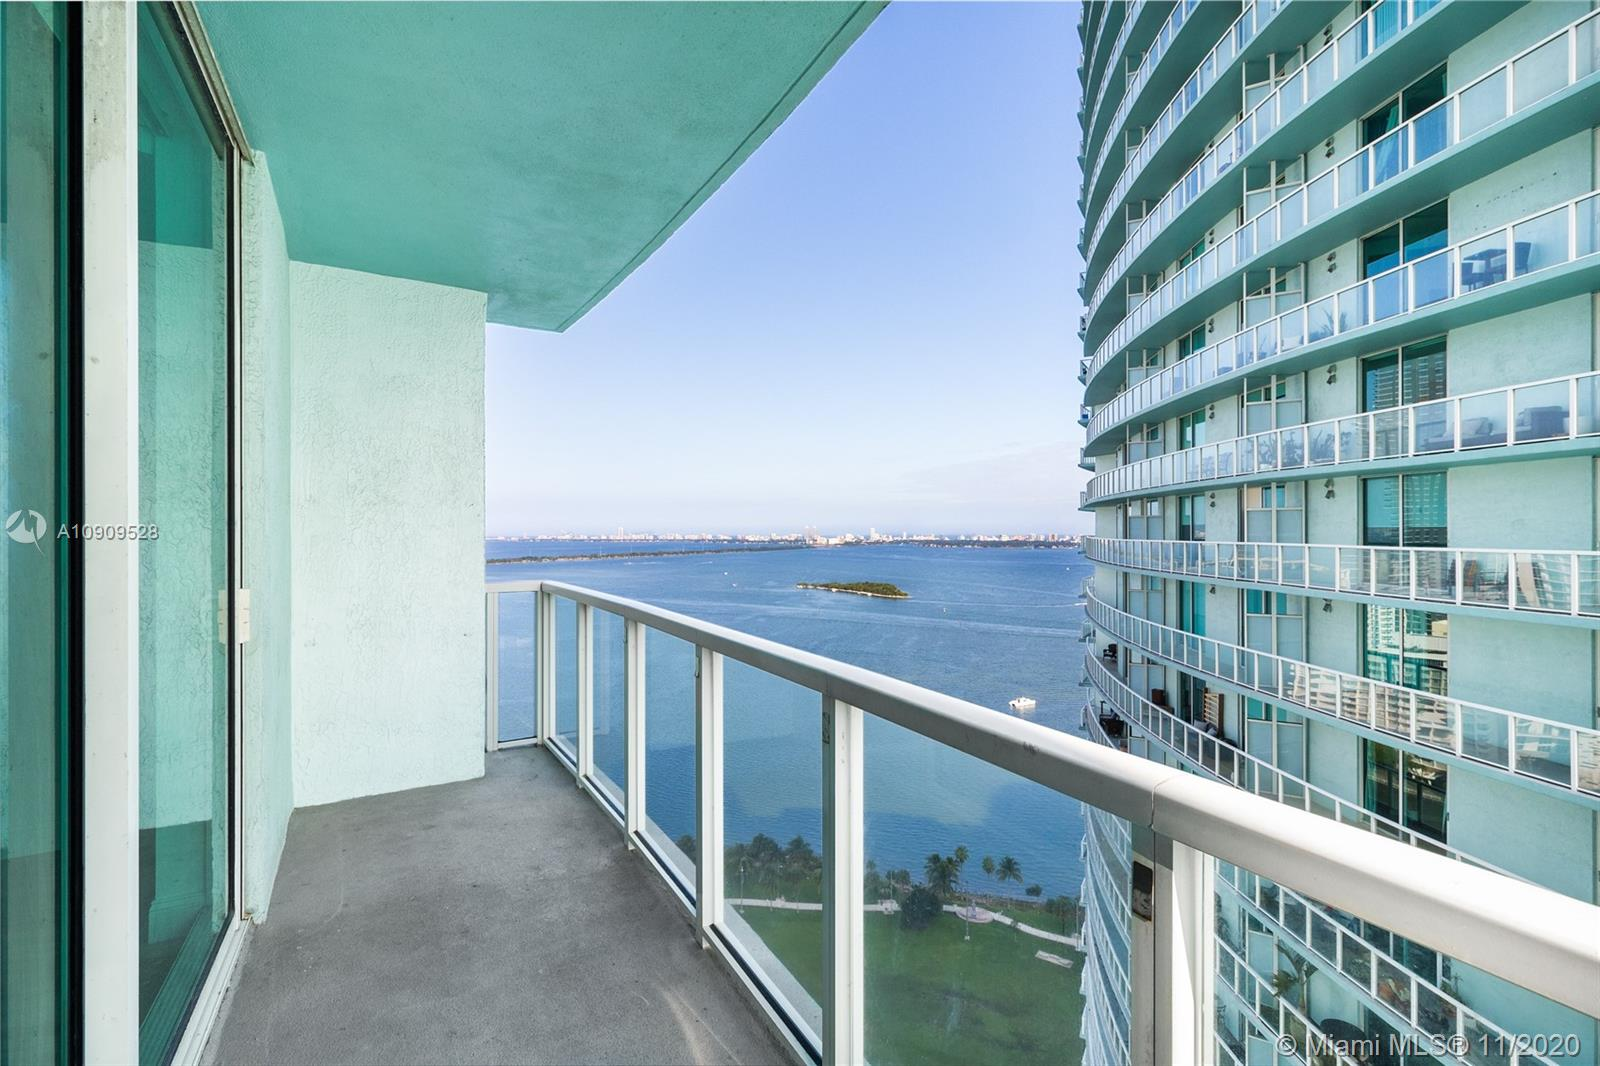 Stunning & spacious one bedroom apartment with beautiful views of Biscayne Bay and downtown. Immaculate gray-toned European floors throughout the living and bedroom of this light filled apartment. Quantum on the Bay offers hotel style amenities as well as basic cable and internet. State of the art gym, movie theater, two pools, business center, resident lounge rooms and so much more! Enjoy luxury living at Quantum and centrally located within the hot spots in Miami; Downtown, Edgewater, Midtown, Wynwood, Design District and South Beach!